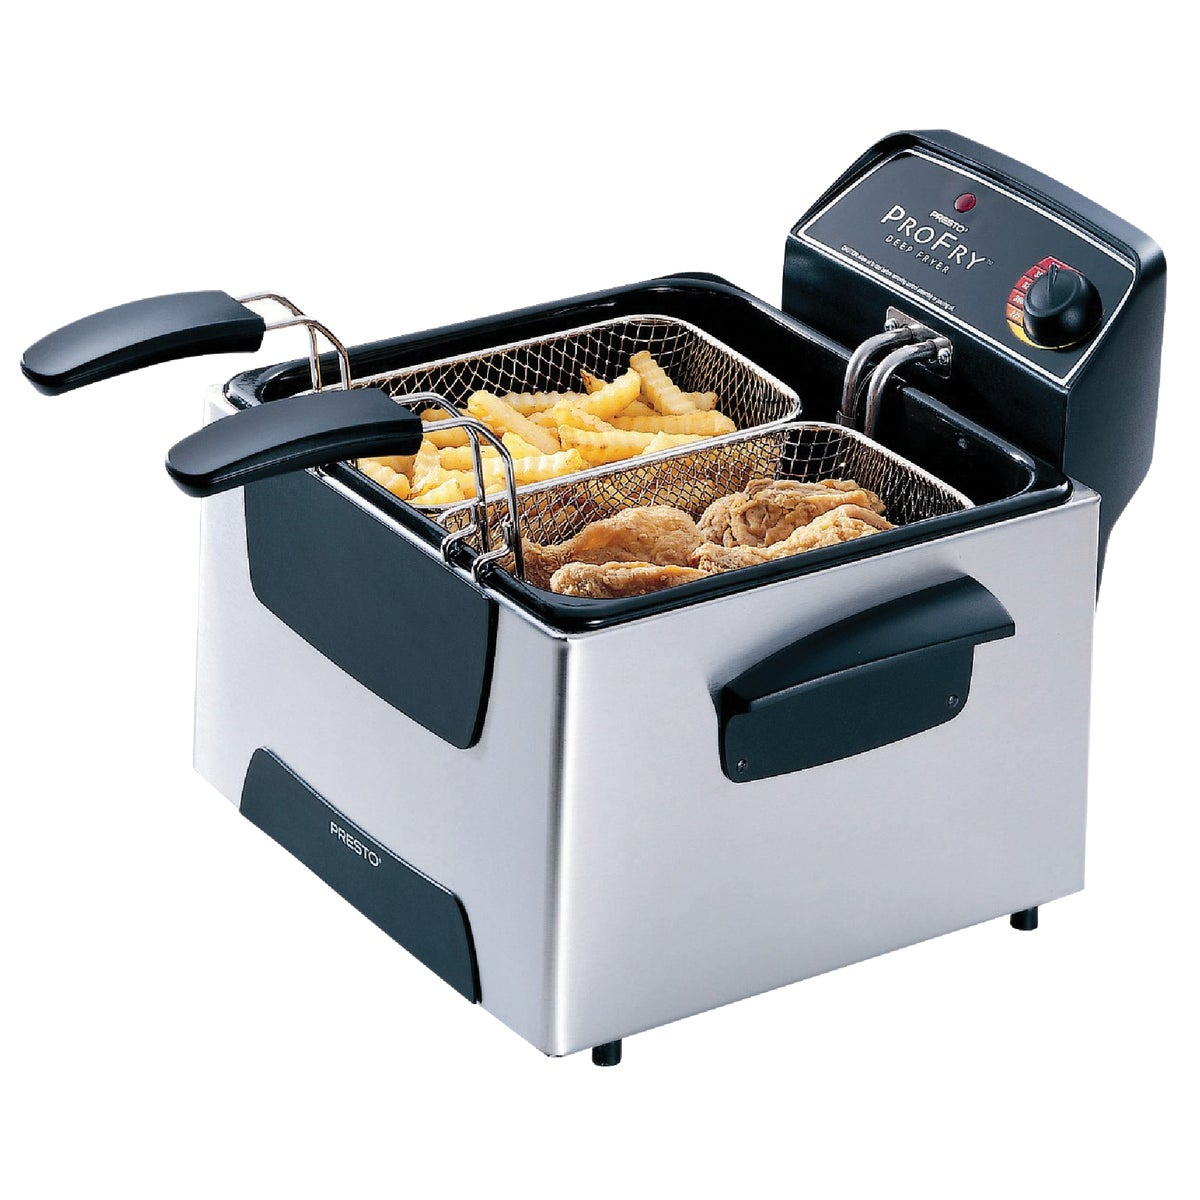 DUAL BSKT PRO DEEP FRYER - 05466 by National Presto Ind